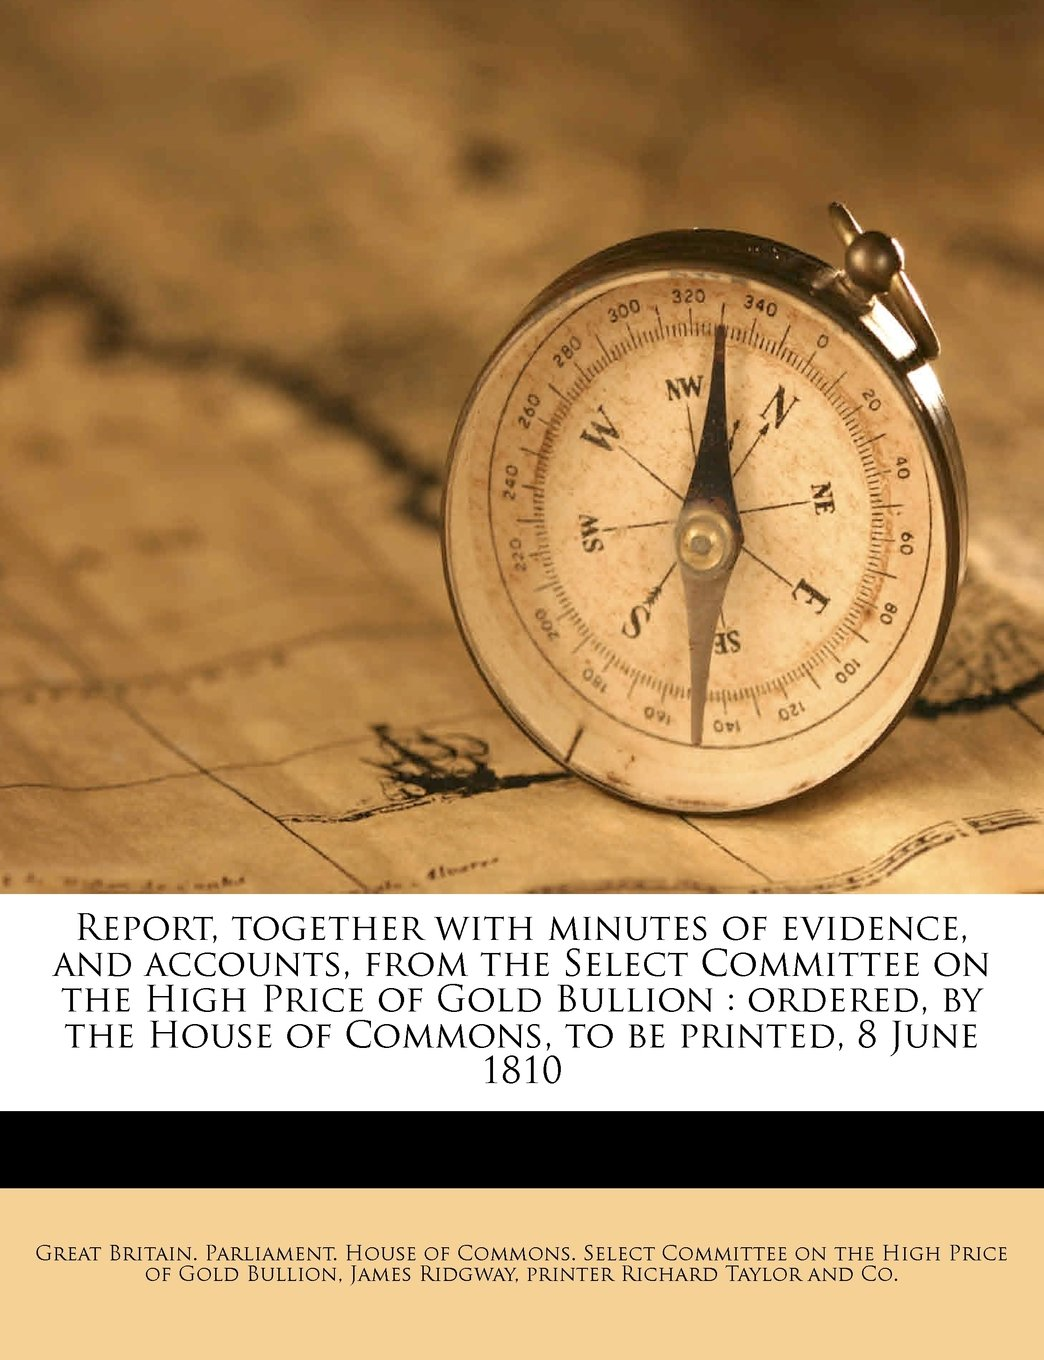 Download Report, together with minutes of evidence, and accounts, from the Select Committee on the High Price of Gold Bullion: ordered, by the House of Commons, to be printed, 8 June 1810 Volume 10 PDF